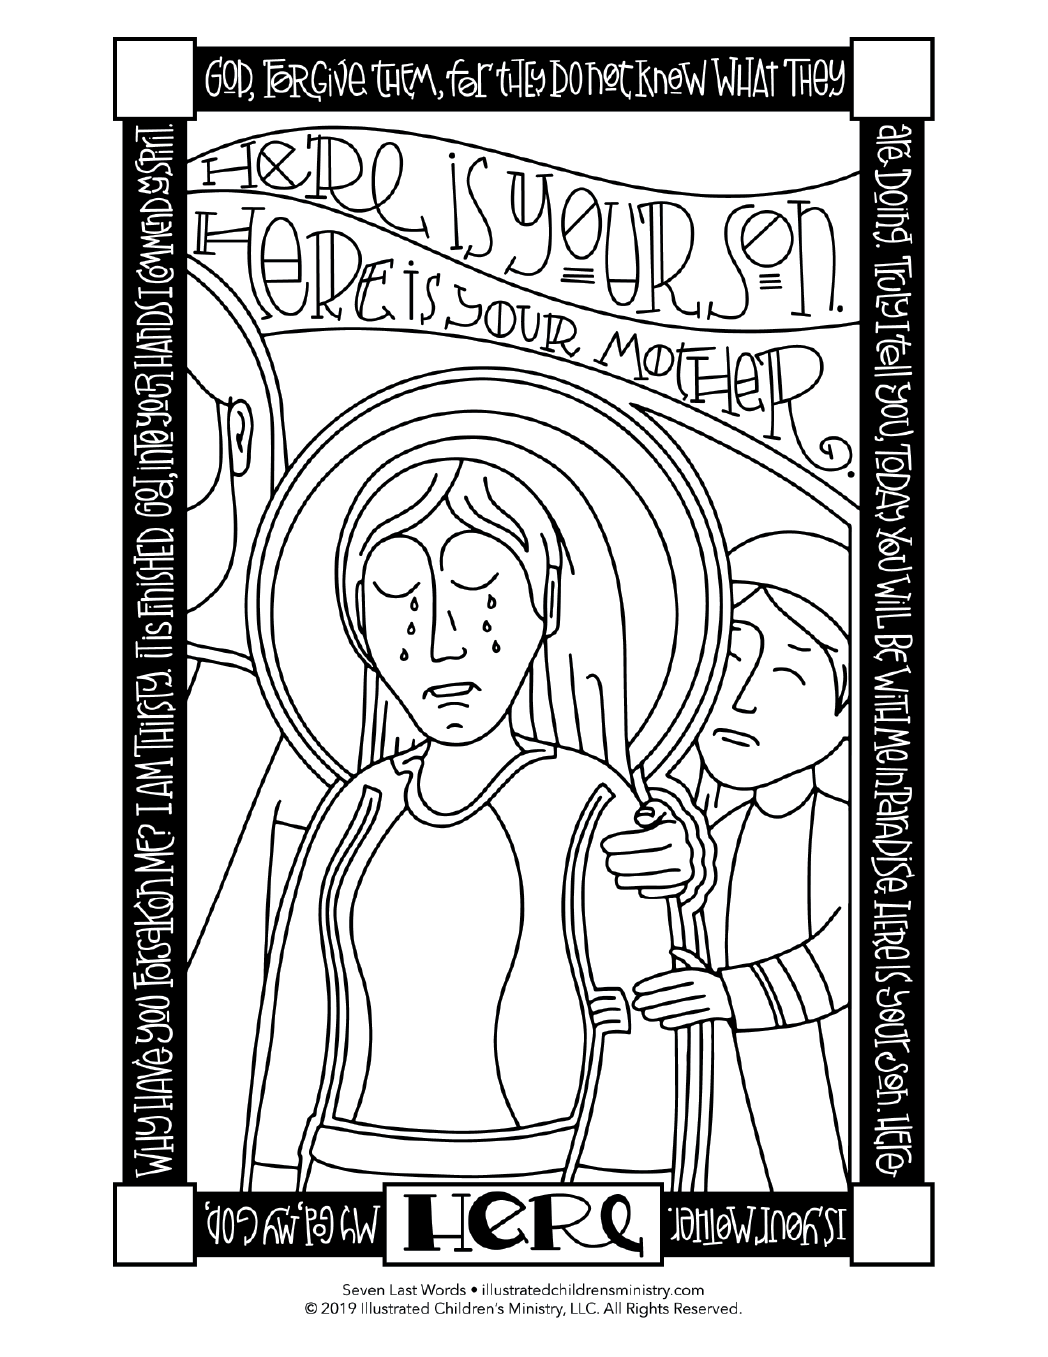 Seven Last Words coloring page simple - Here